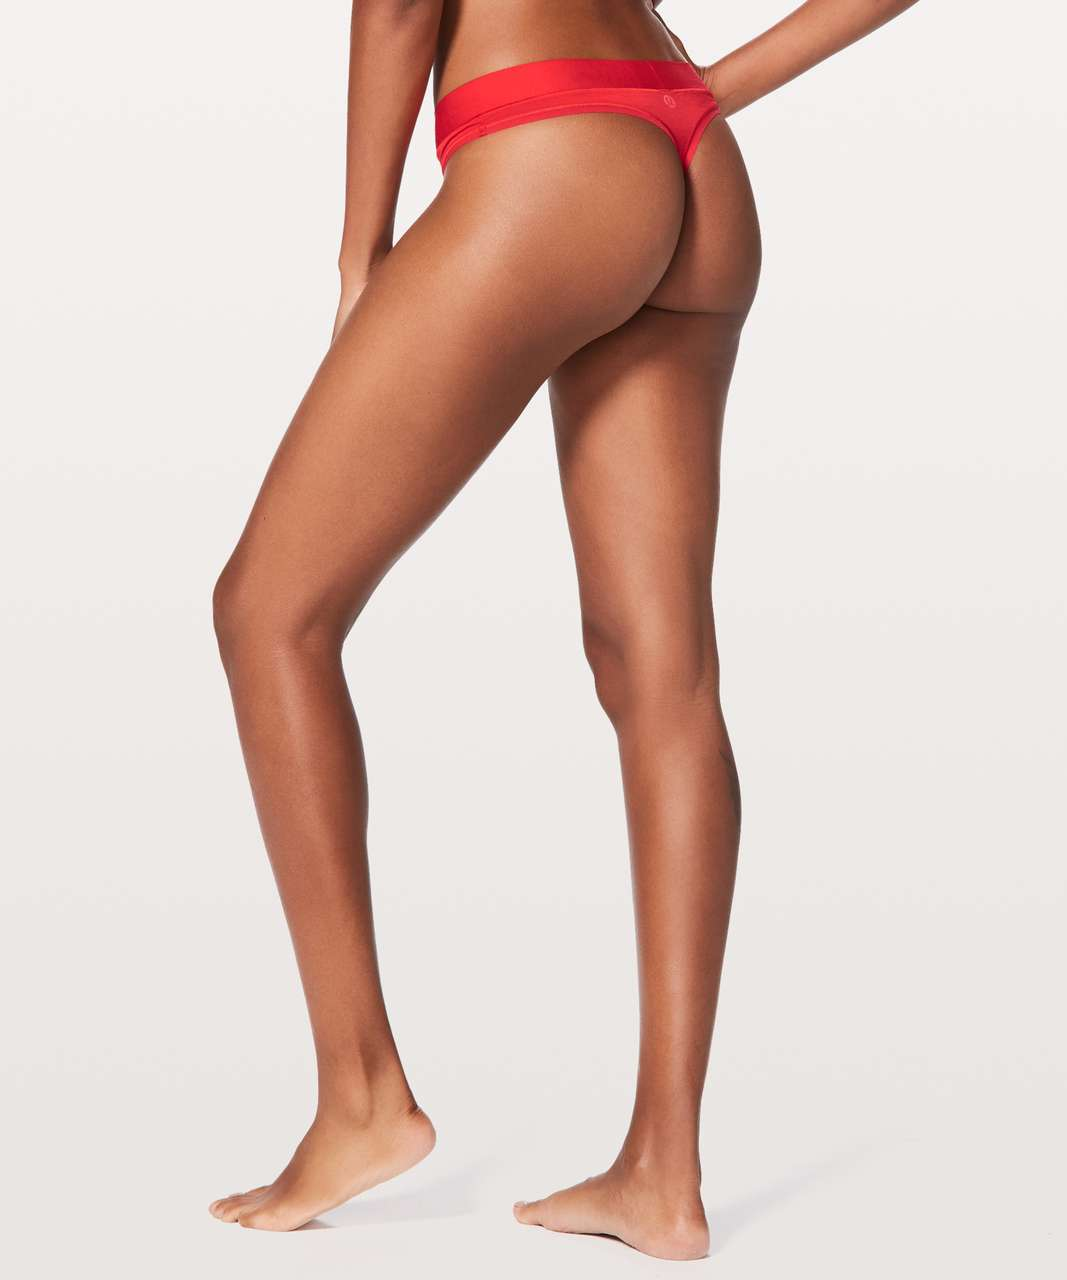 Lululemon Mula Bandhawear Thong - True Red